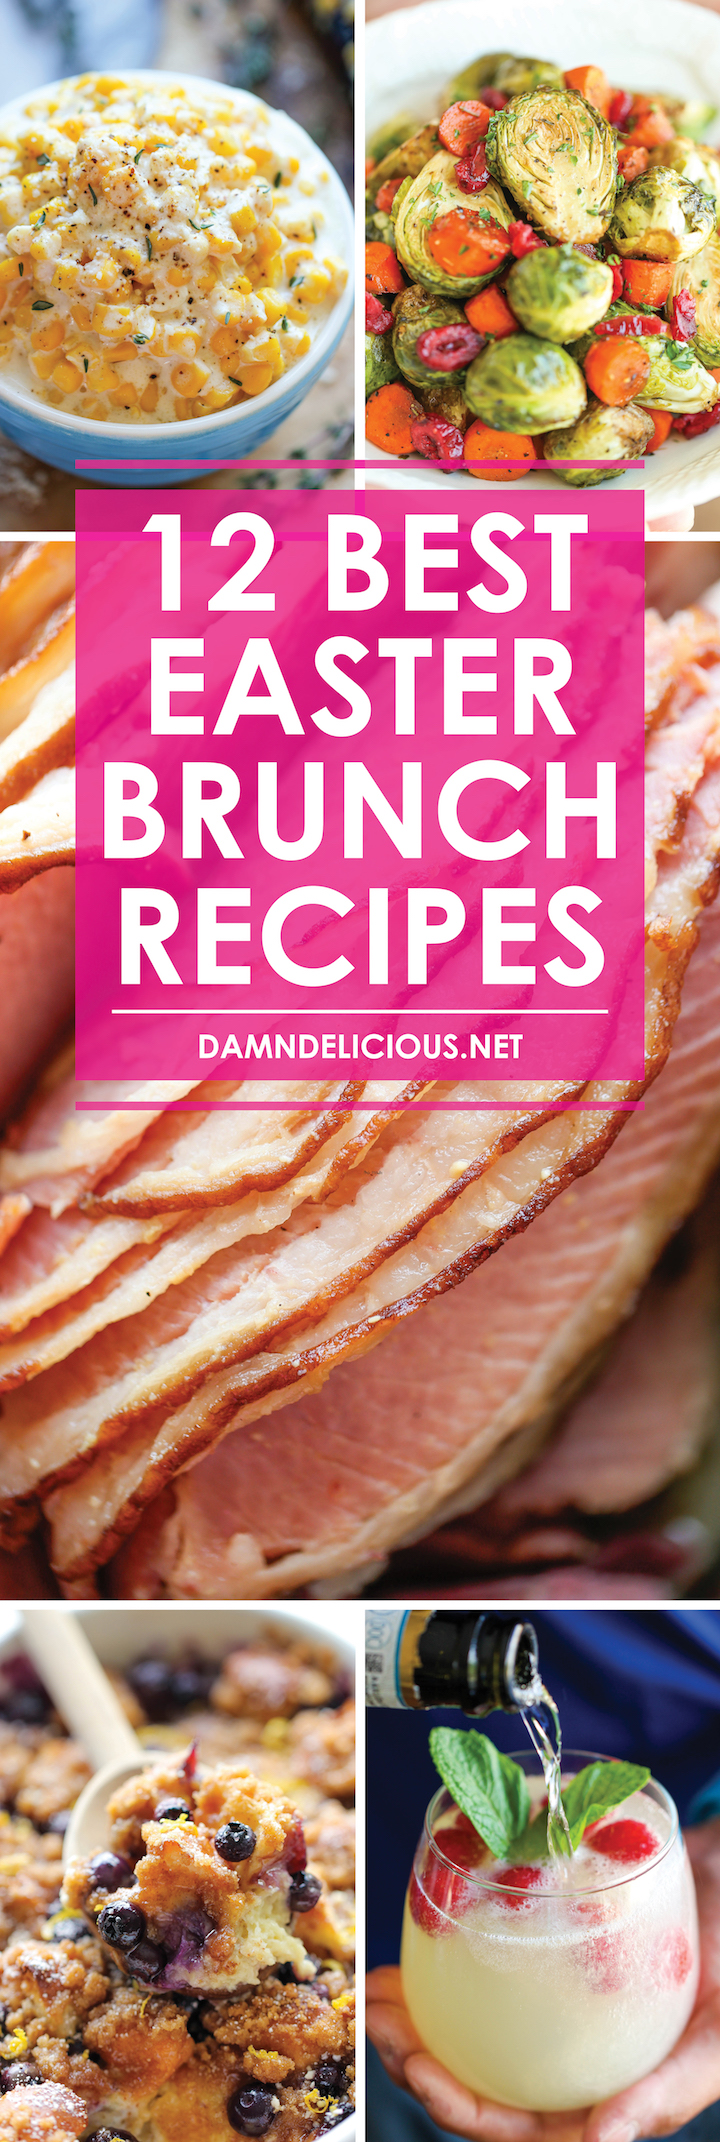 12 Best Easter Brunch Recipes - Have the best/easiest Easter brunch ever! From drinks to appetizers to sides to mains, this menu has you completely covered.